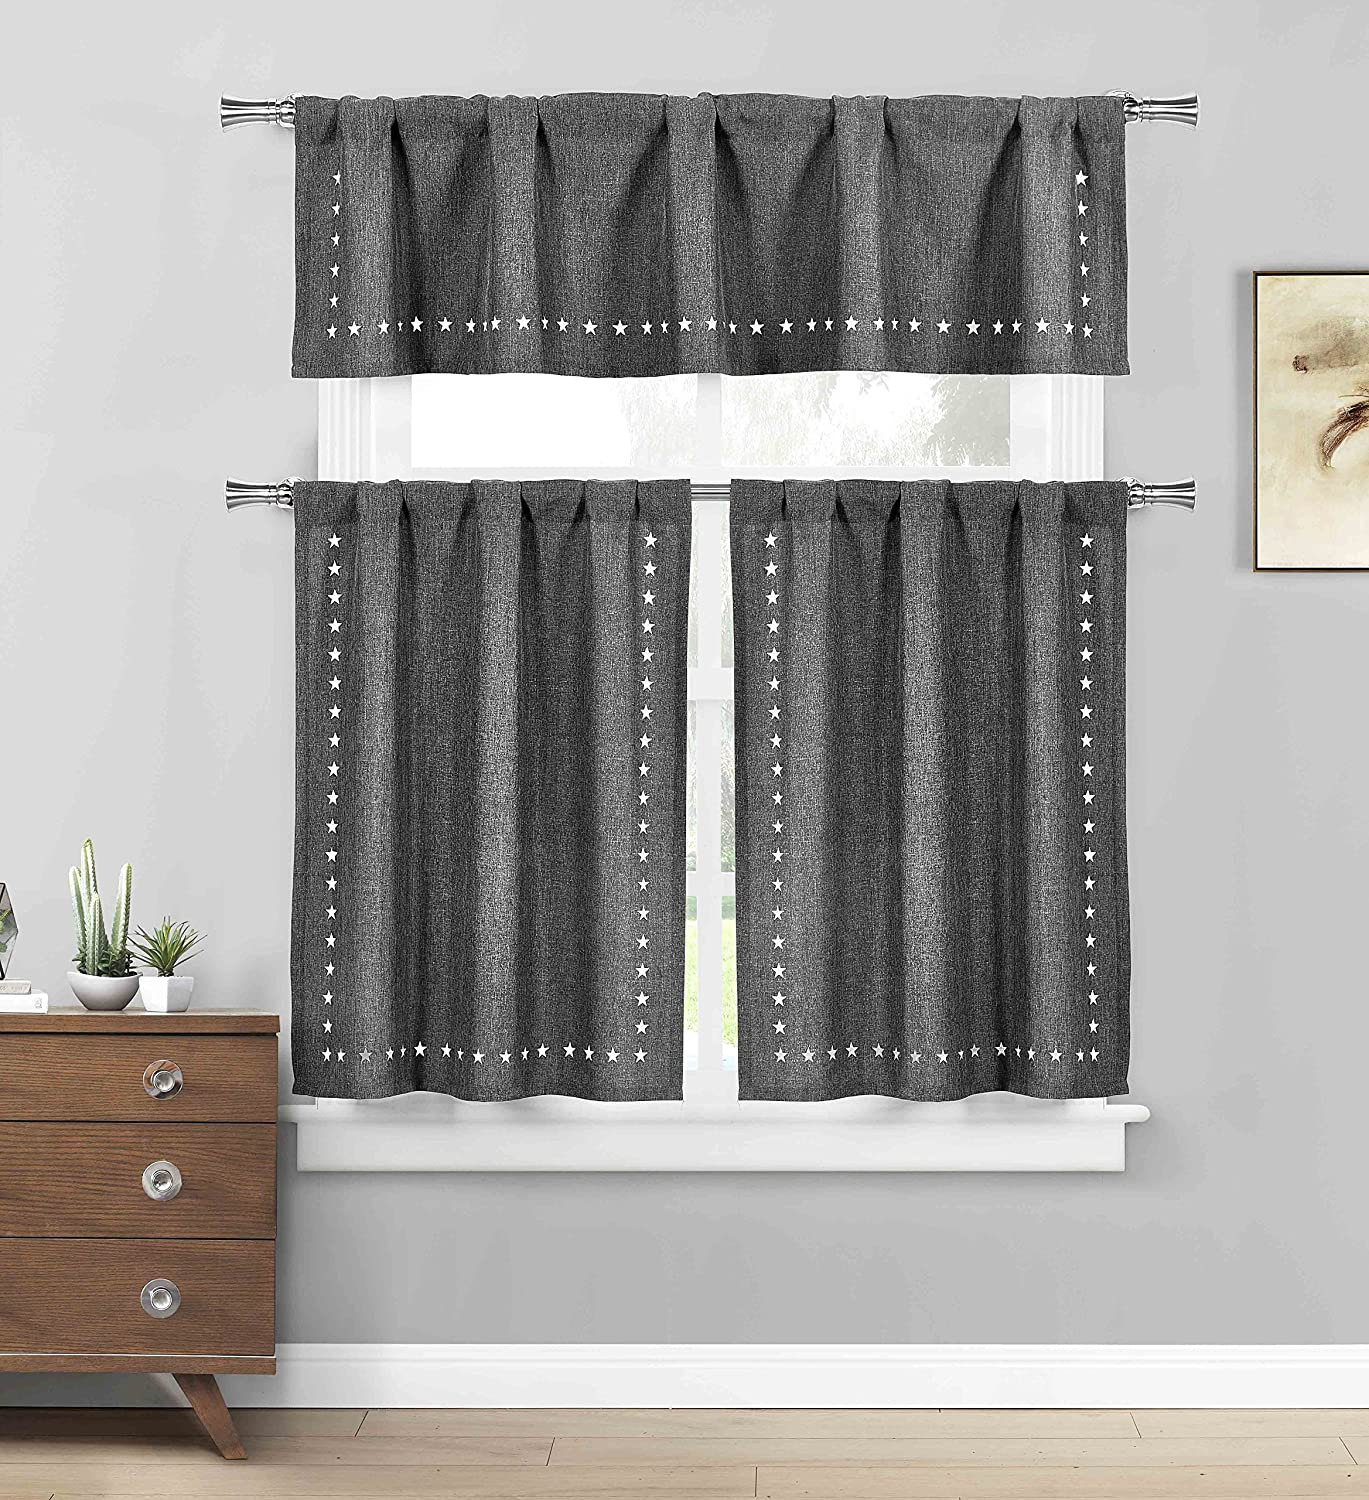 Three Piece Kitchen/Cafe Tier Window Curtain Set: Solid Color with Stars Cut-Out Pattern (Burgundy) Bathroom and More KWC-CONOR-12277-BURGUNDY